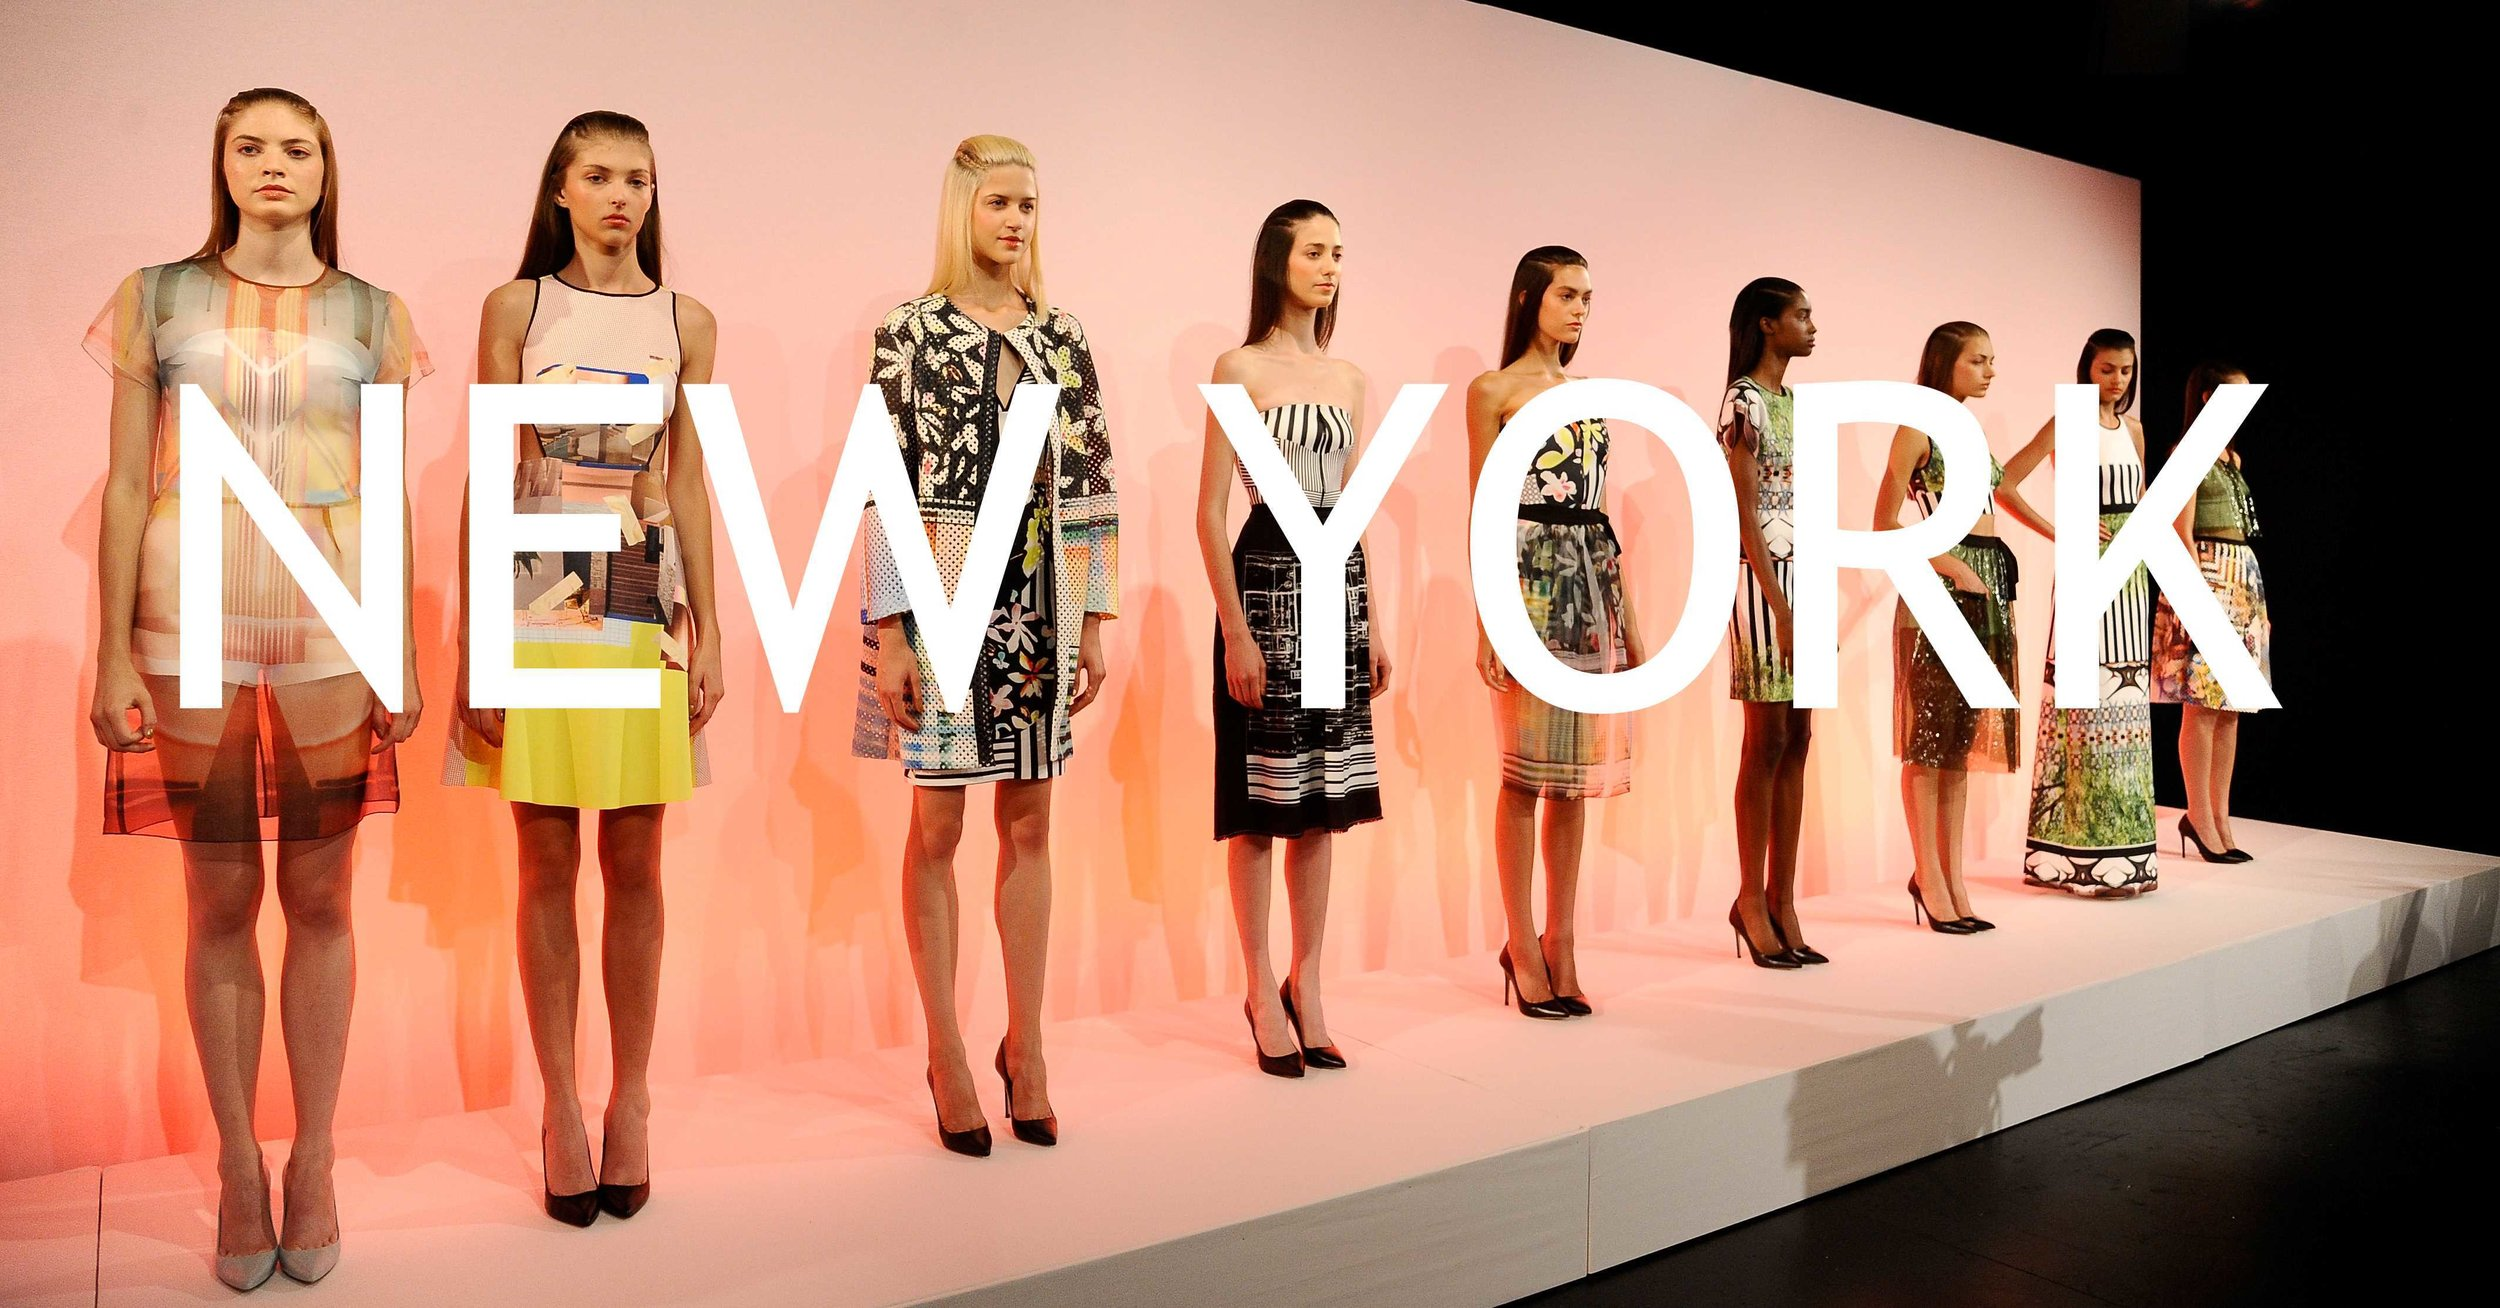 How Marketers And Brands Took Advantage Of New York Fashion Week